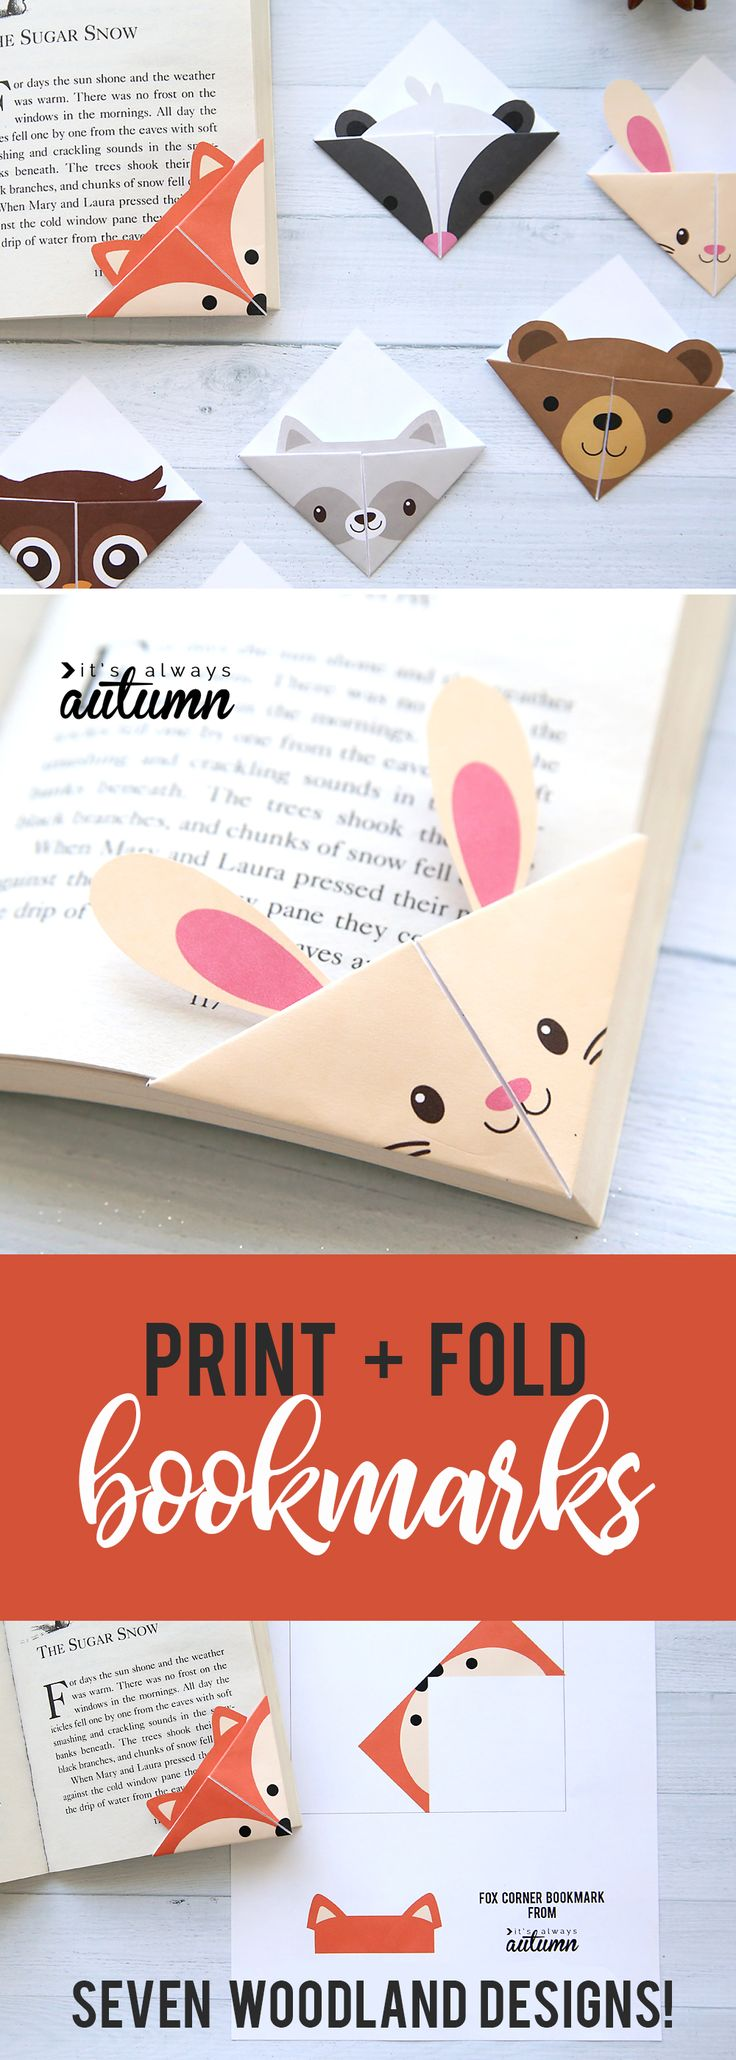 how to make paper bookmarks for books